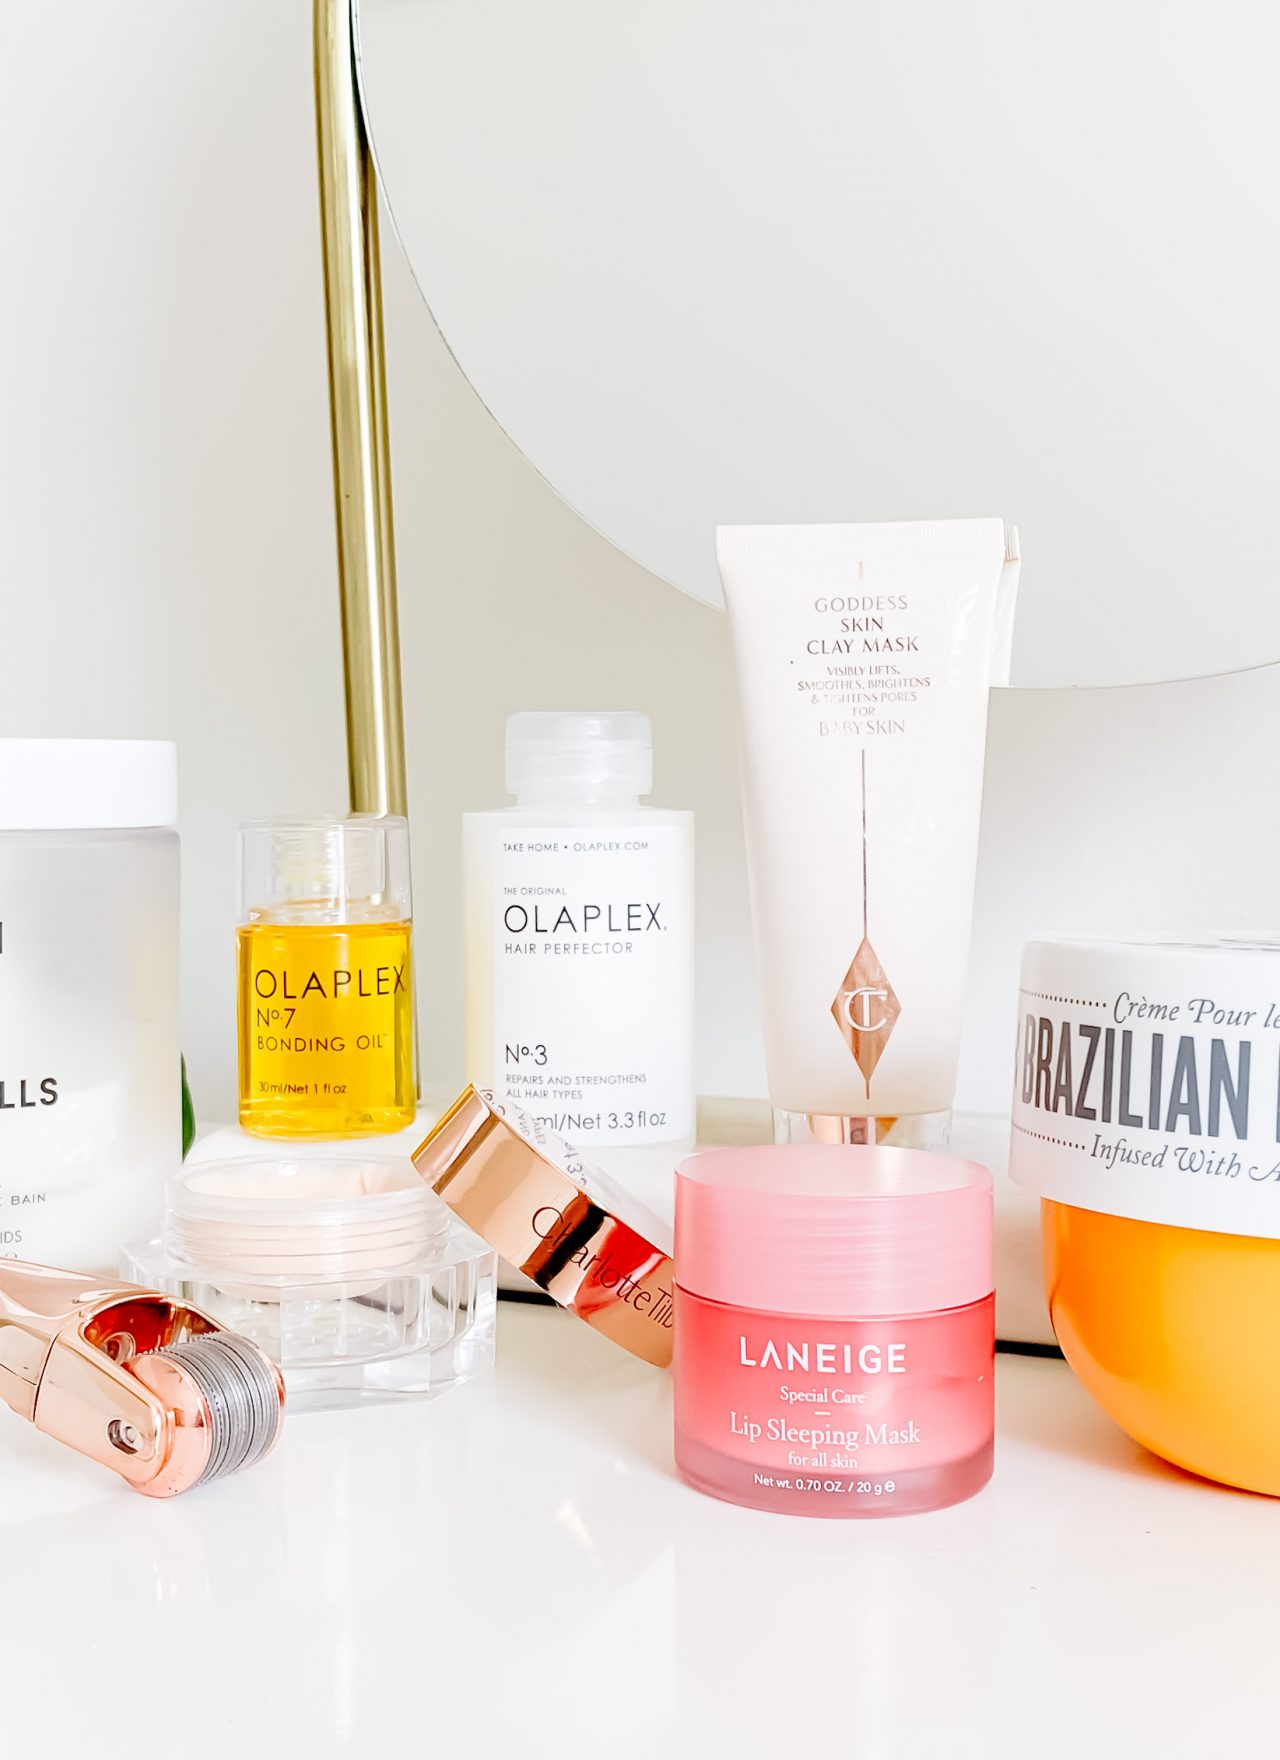 MY FAVORITE SELF CARE BEAUTY PRODUCTS FROM SEPHORA | I am sharing my favorite self care products from Sephora on the blog today, just in time for their Spring sale. It includes my favorite skincare, hair and body selfcare products. Take care of yourself during this time. #selfcare